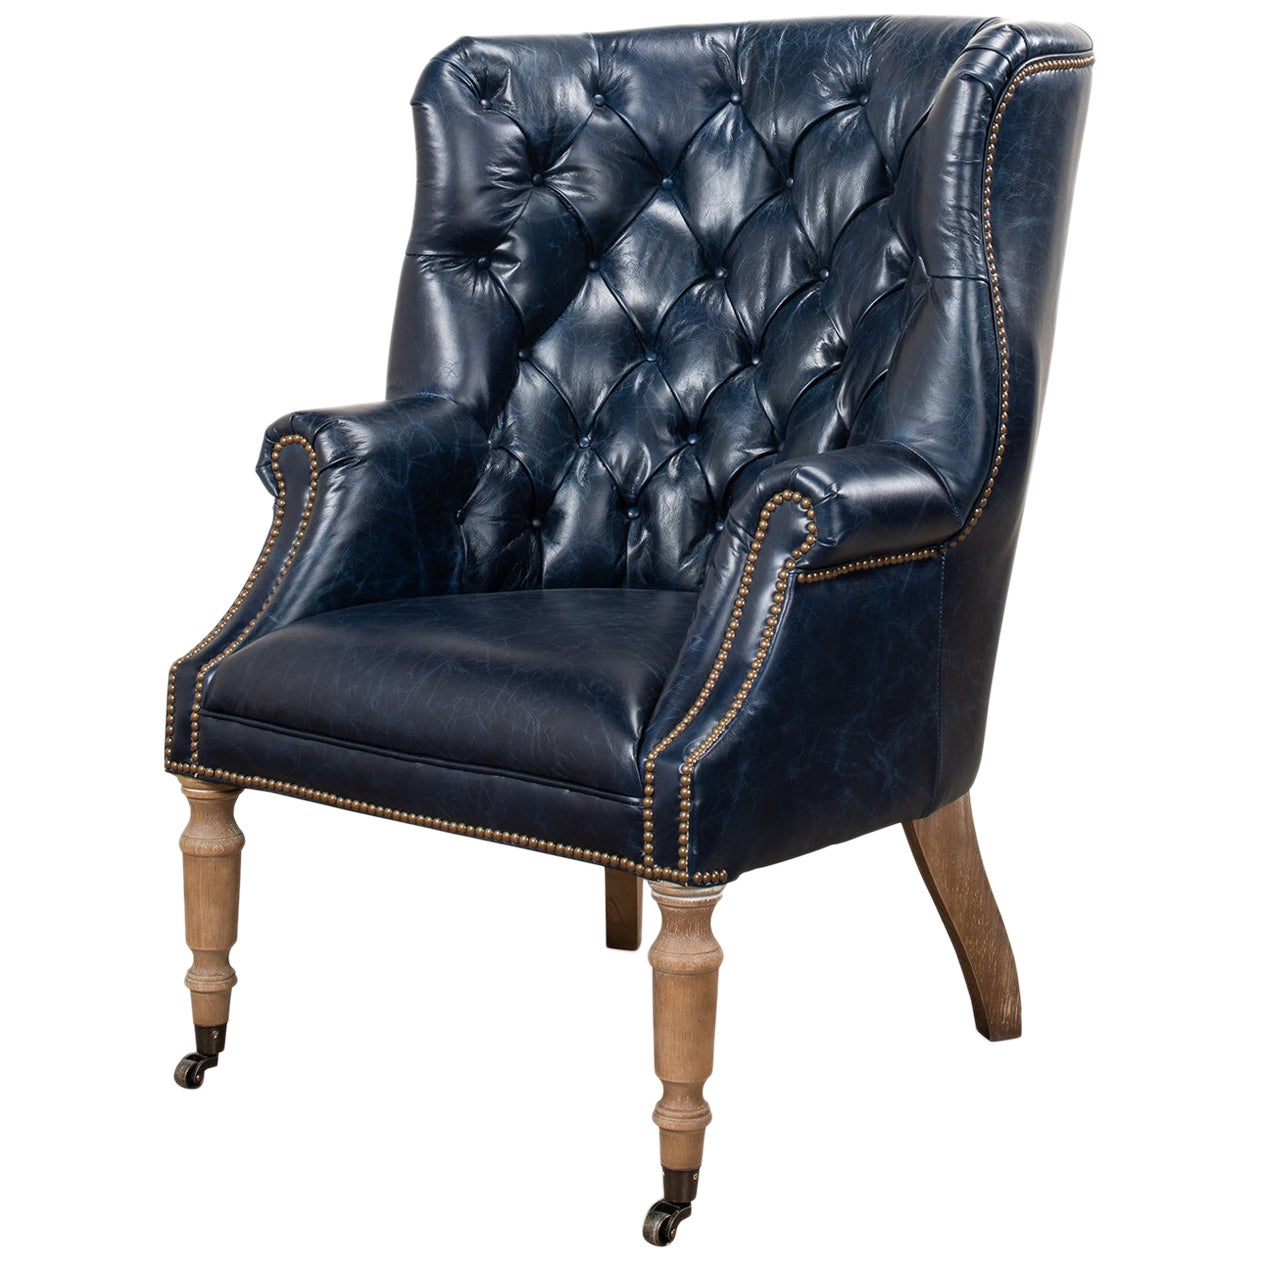 Georgian Barrel Back Wingchair, Chateau Blue